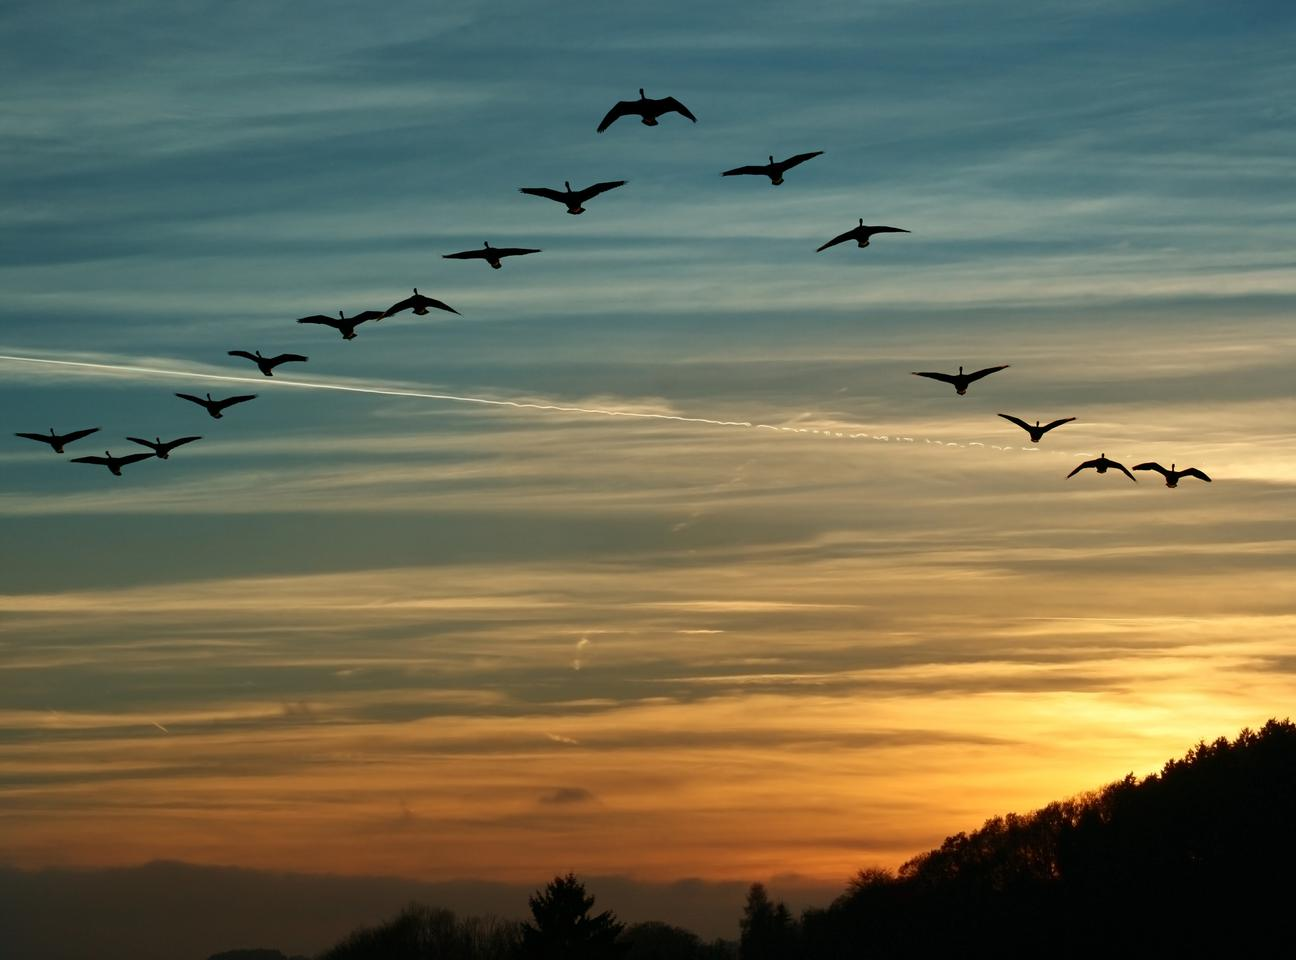 Scientists may have discovered new evidence explaining the cellular mechanism for how birds and other animals can navigate using the Earth's magnetic field